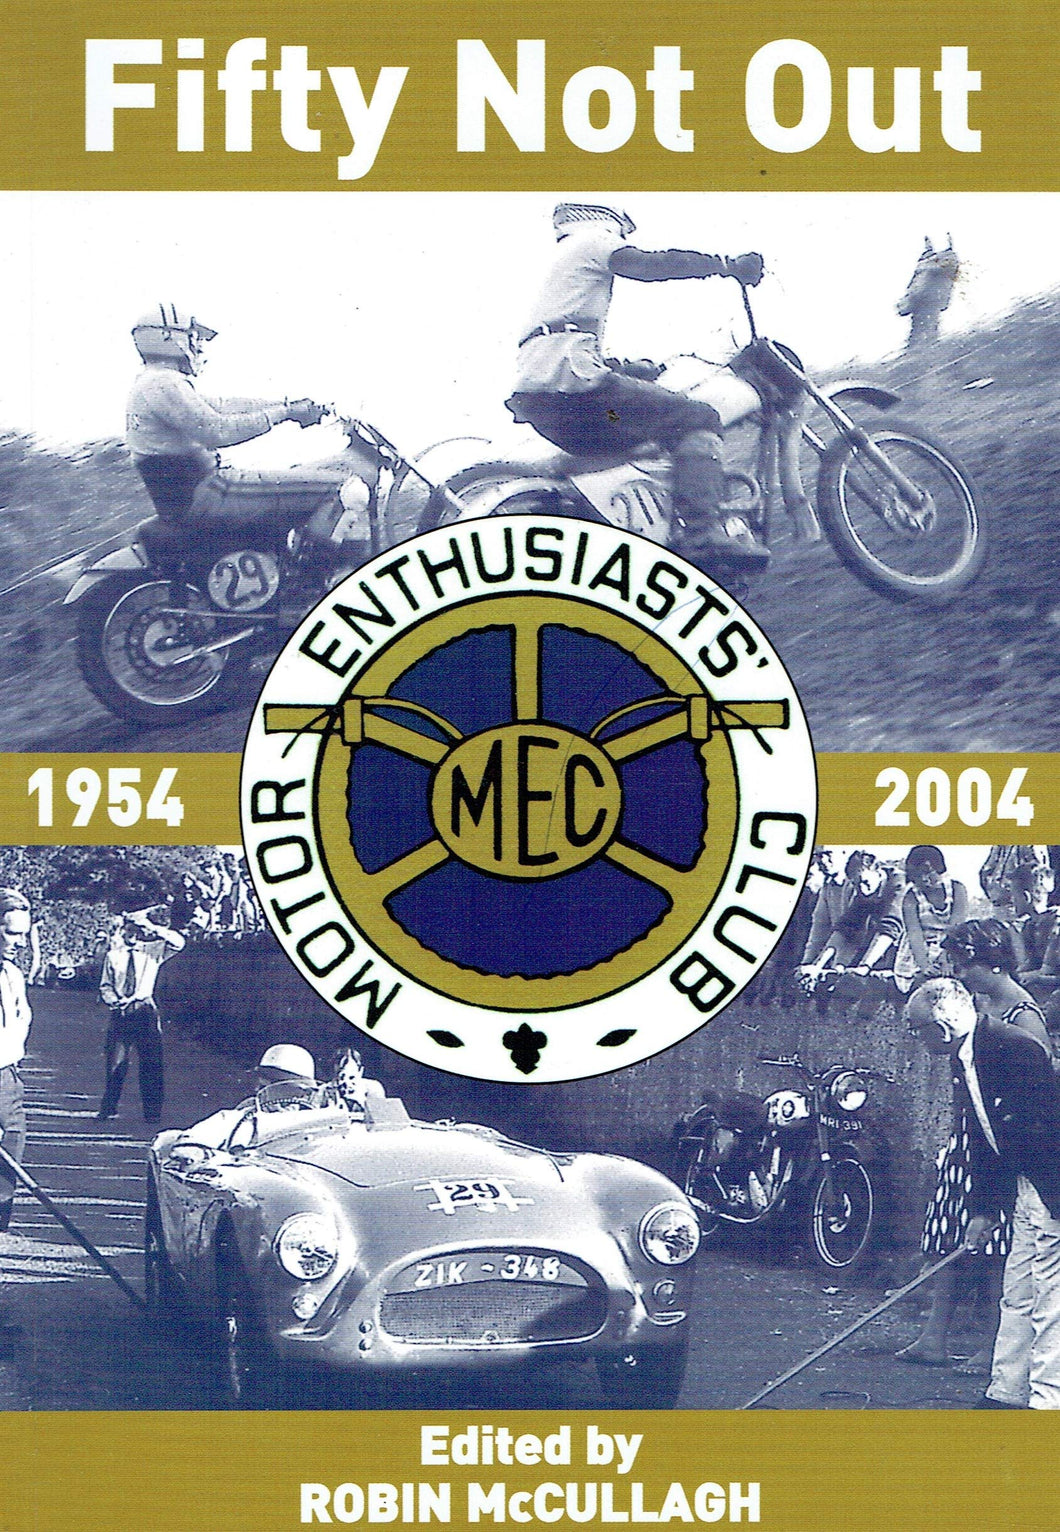 Fifty Not Out: Motor Enthusiasts' Club 1954-2004